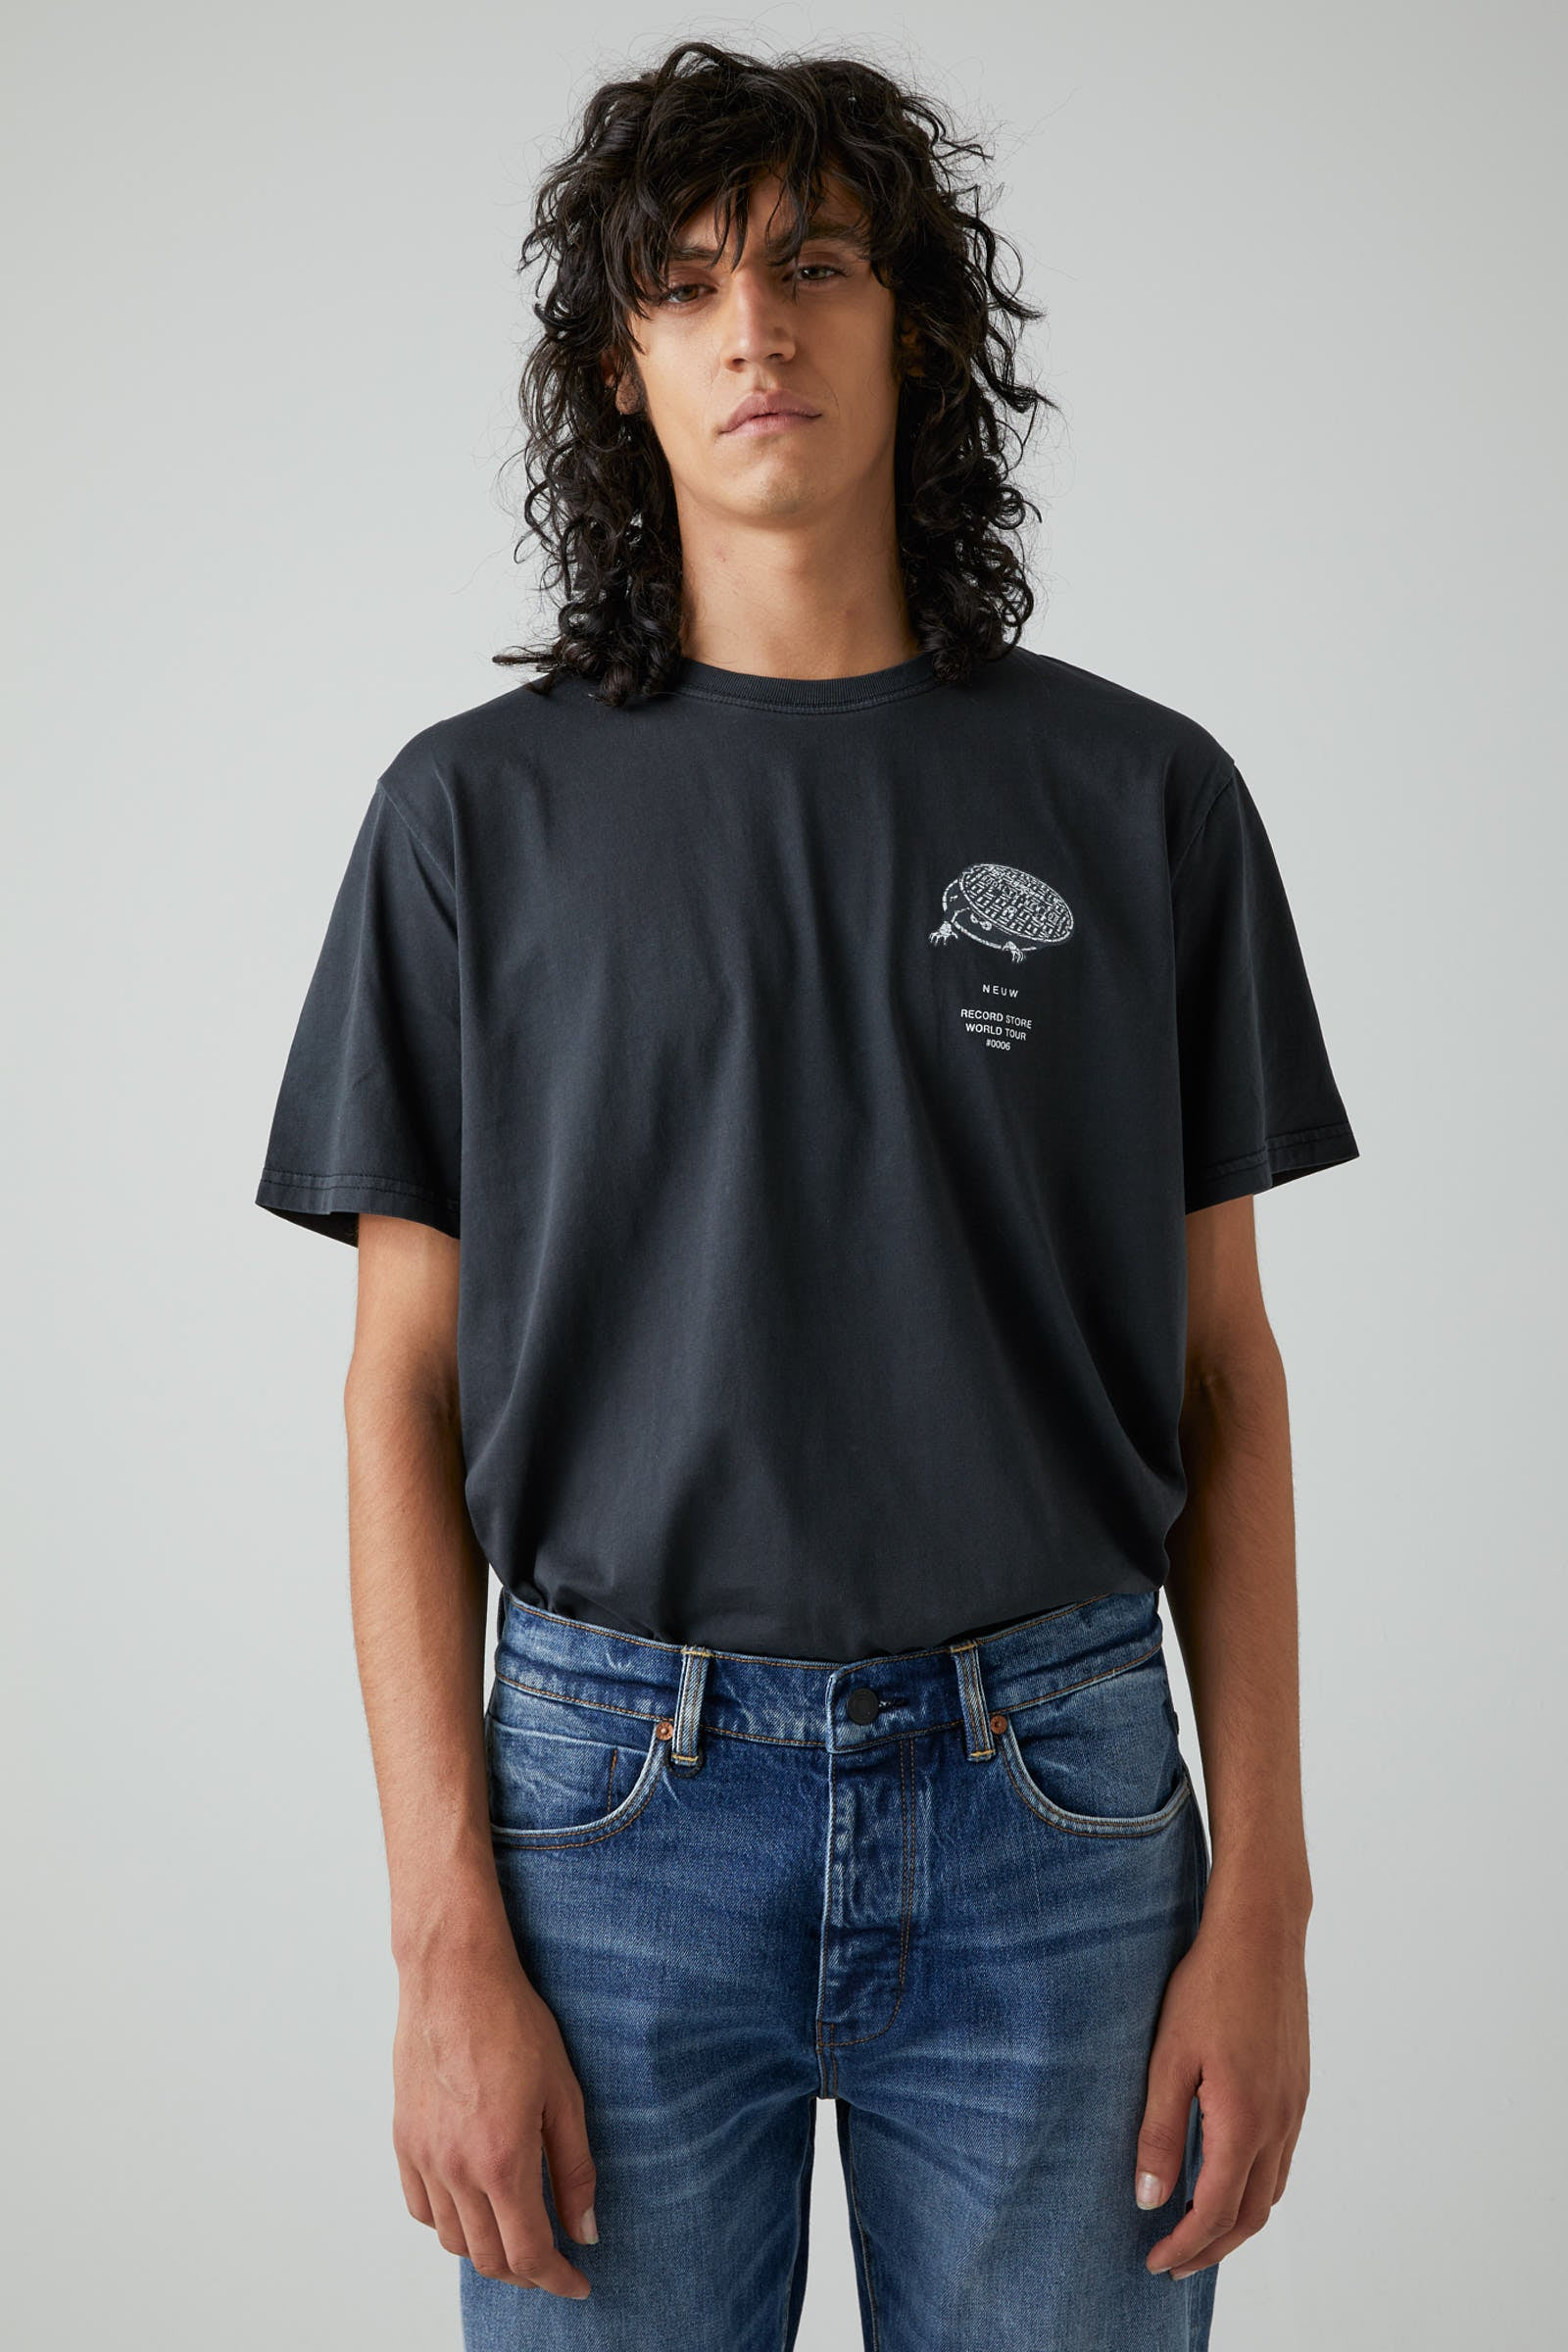 Almost Ready Ss Tee - Black